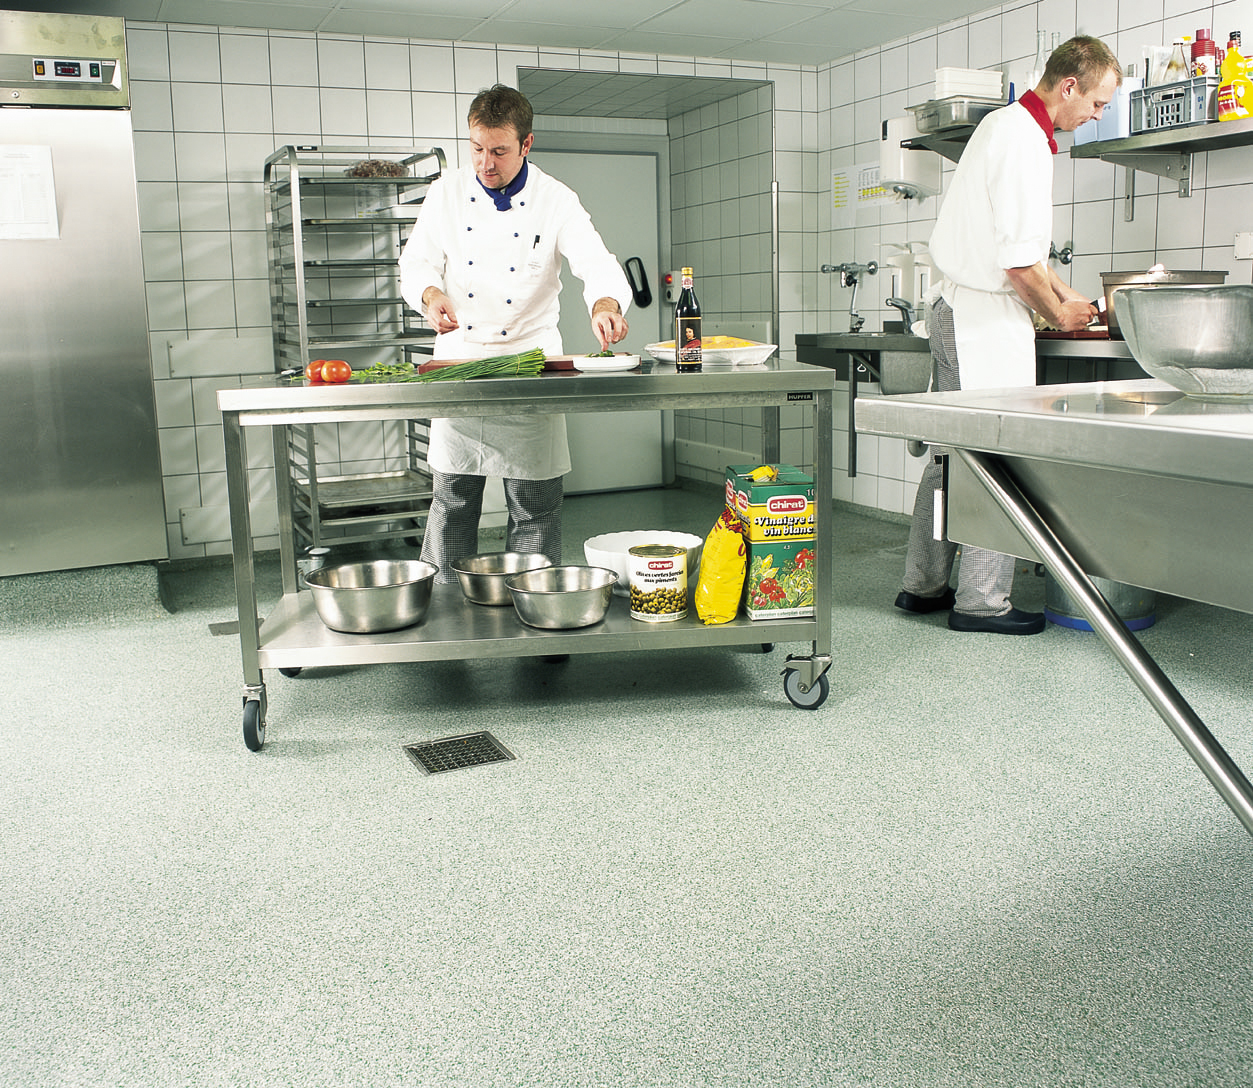 types of kitchen flooring kitchen floors Flake type of kitchen flooring with chefs cooking